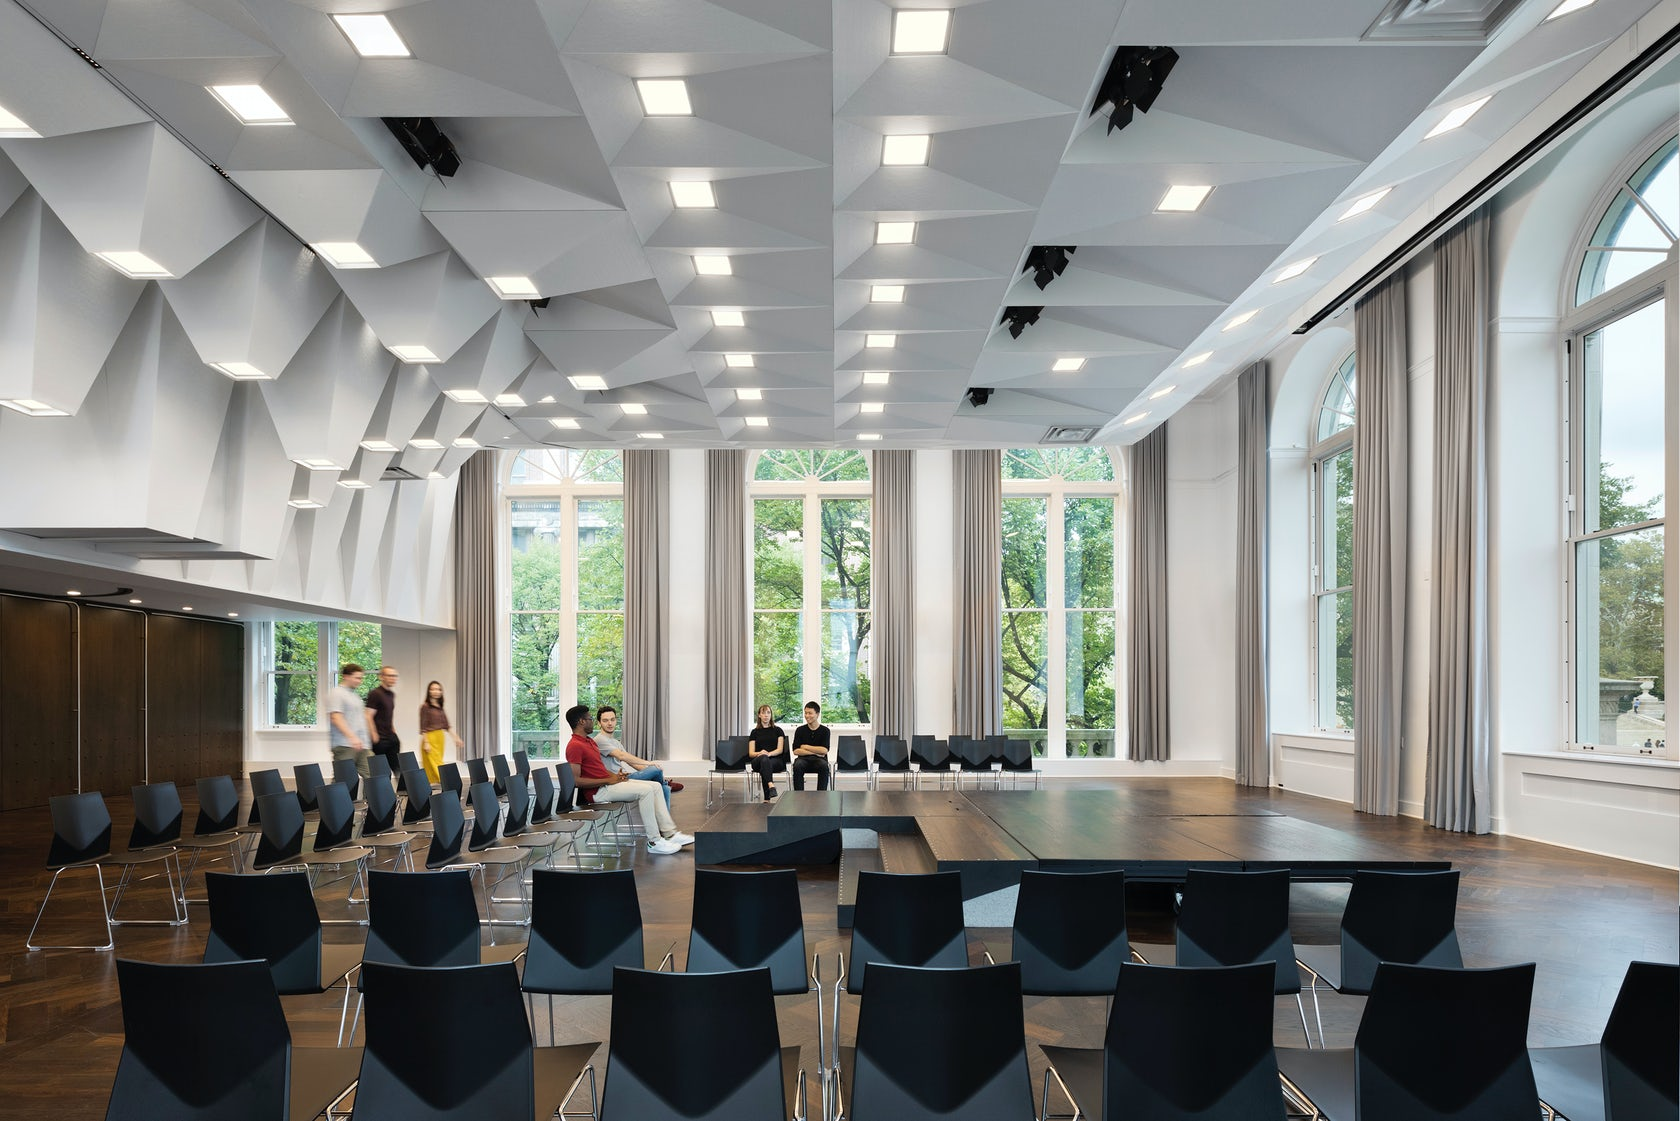 Joseph d jamail lecture hall on architizer